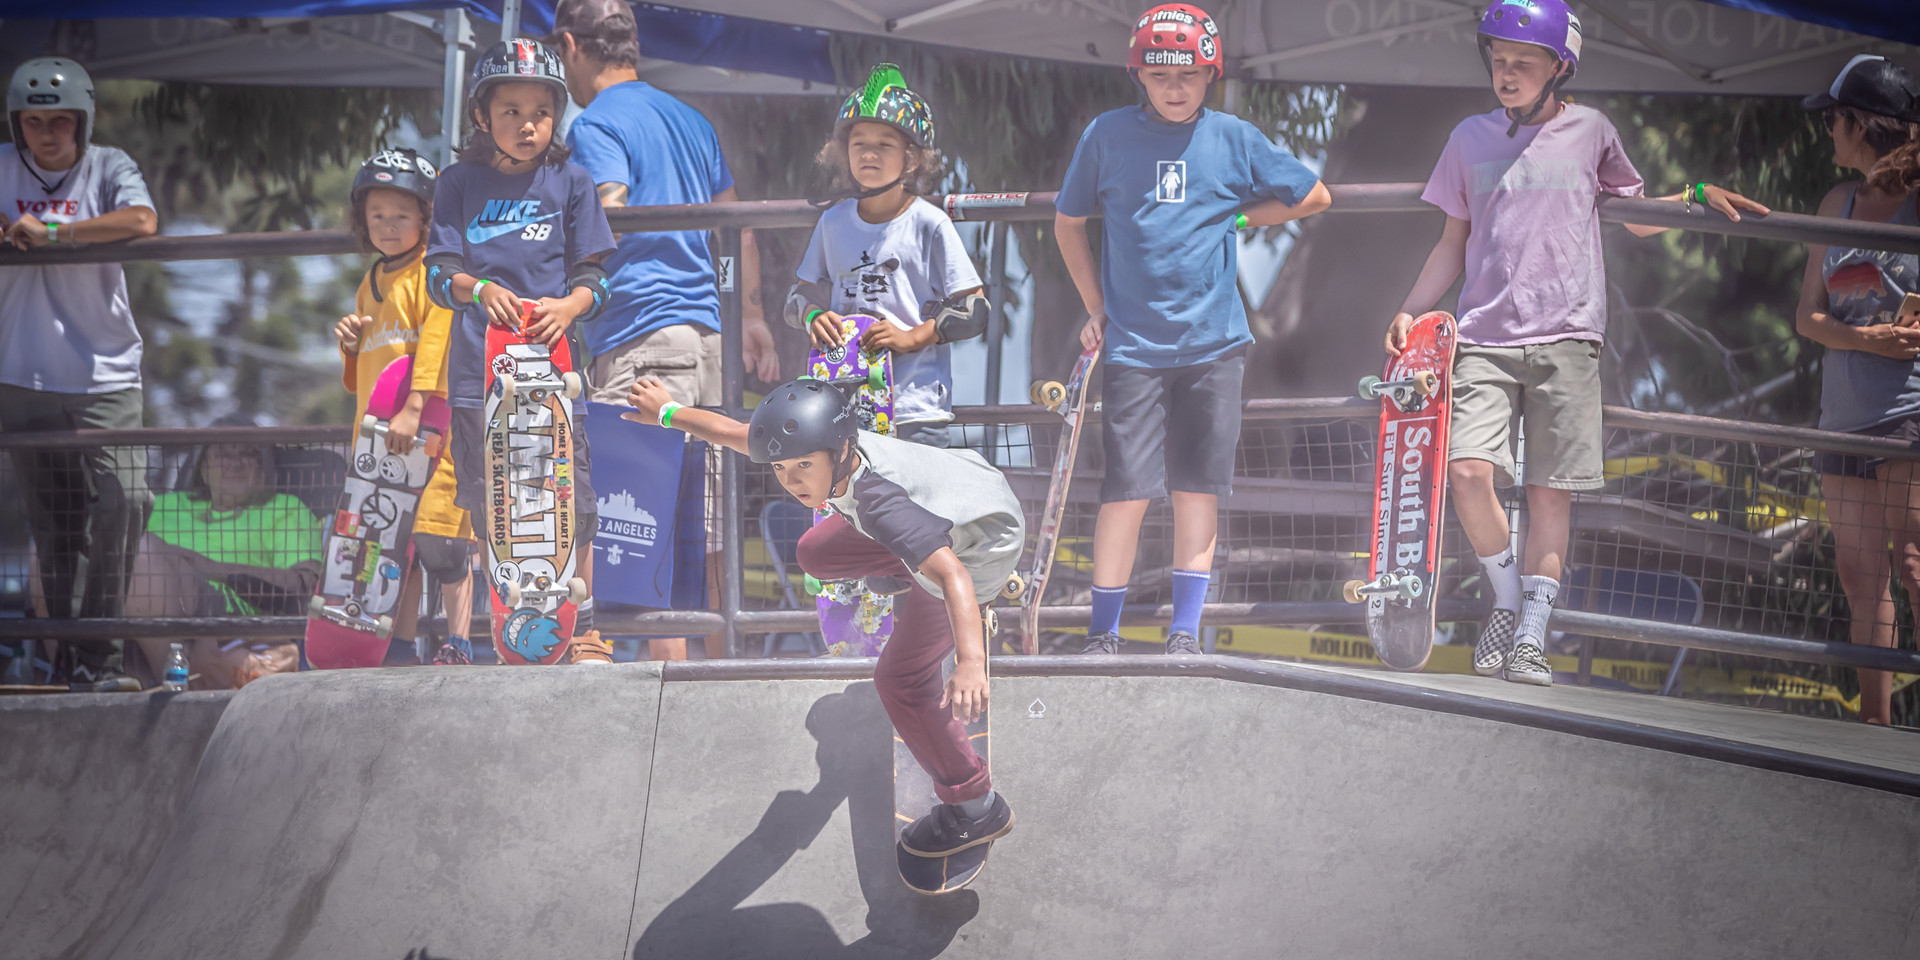 Photo by Vince Pirrozi MVP Action Pix